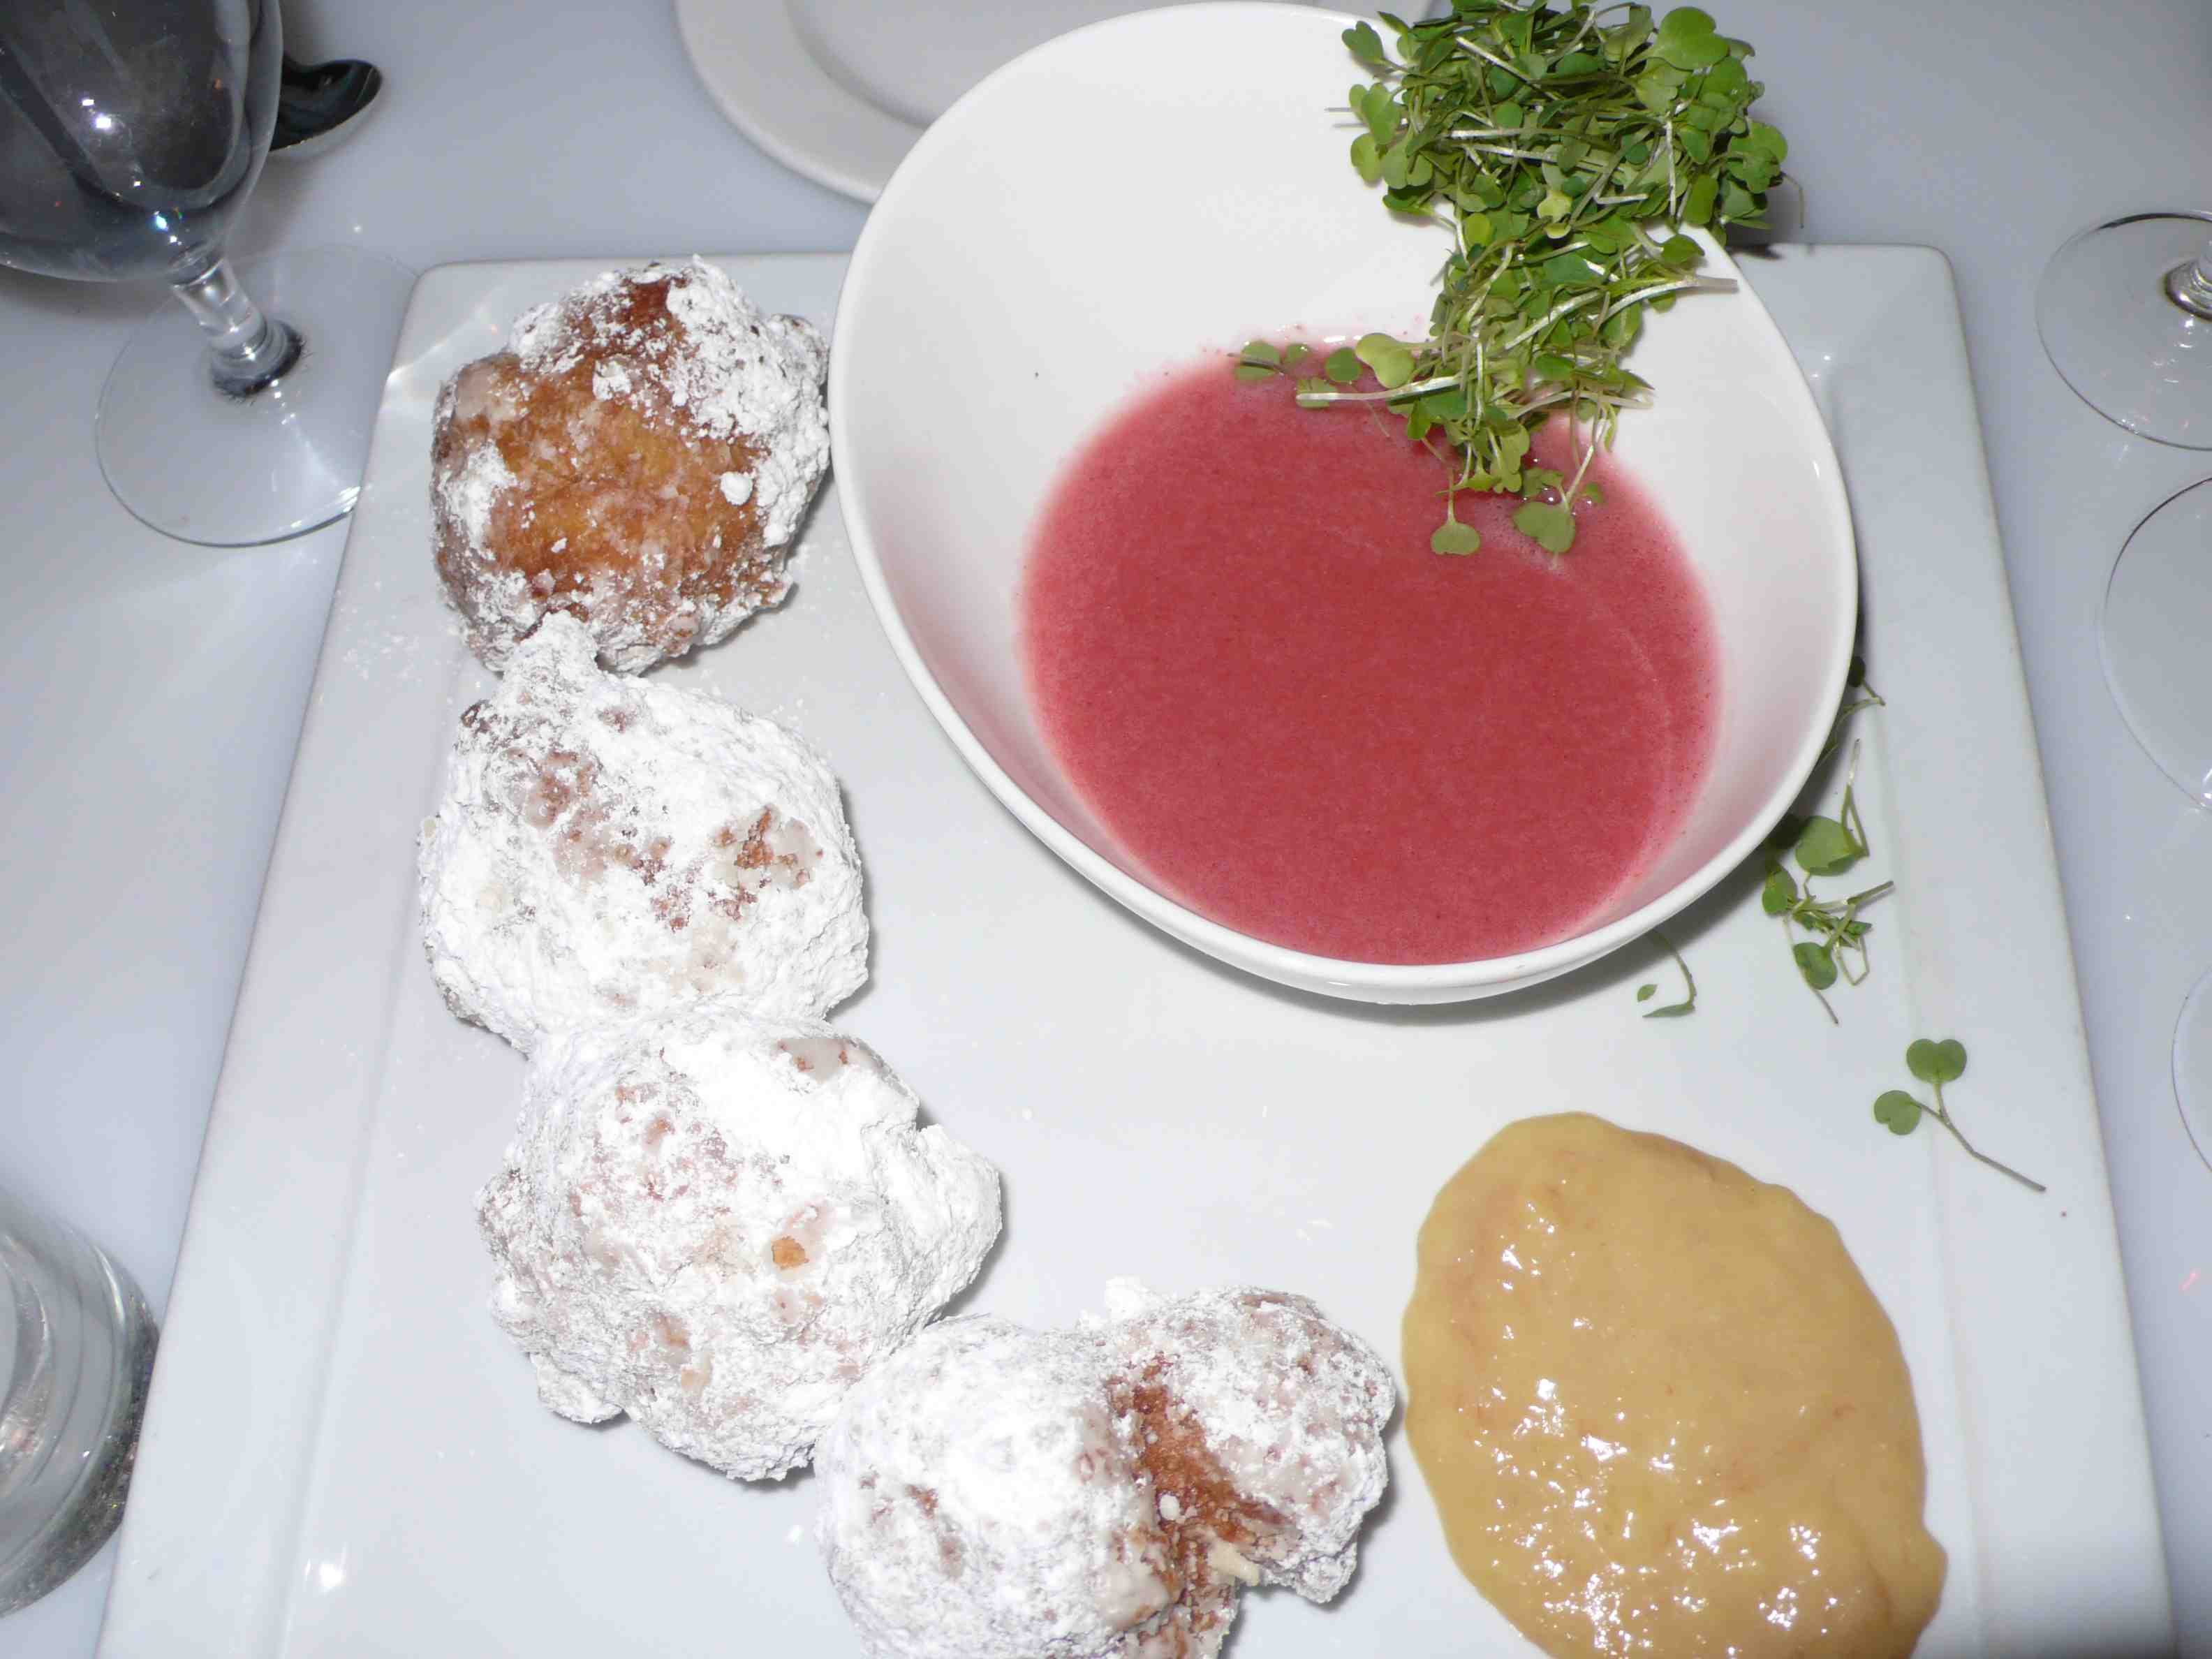 Beignets and strawberry soup, yummy.